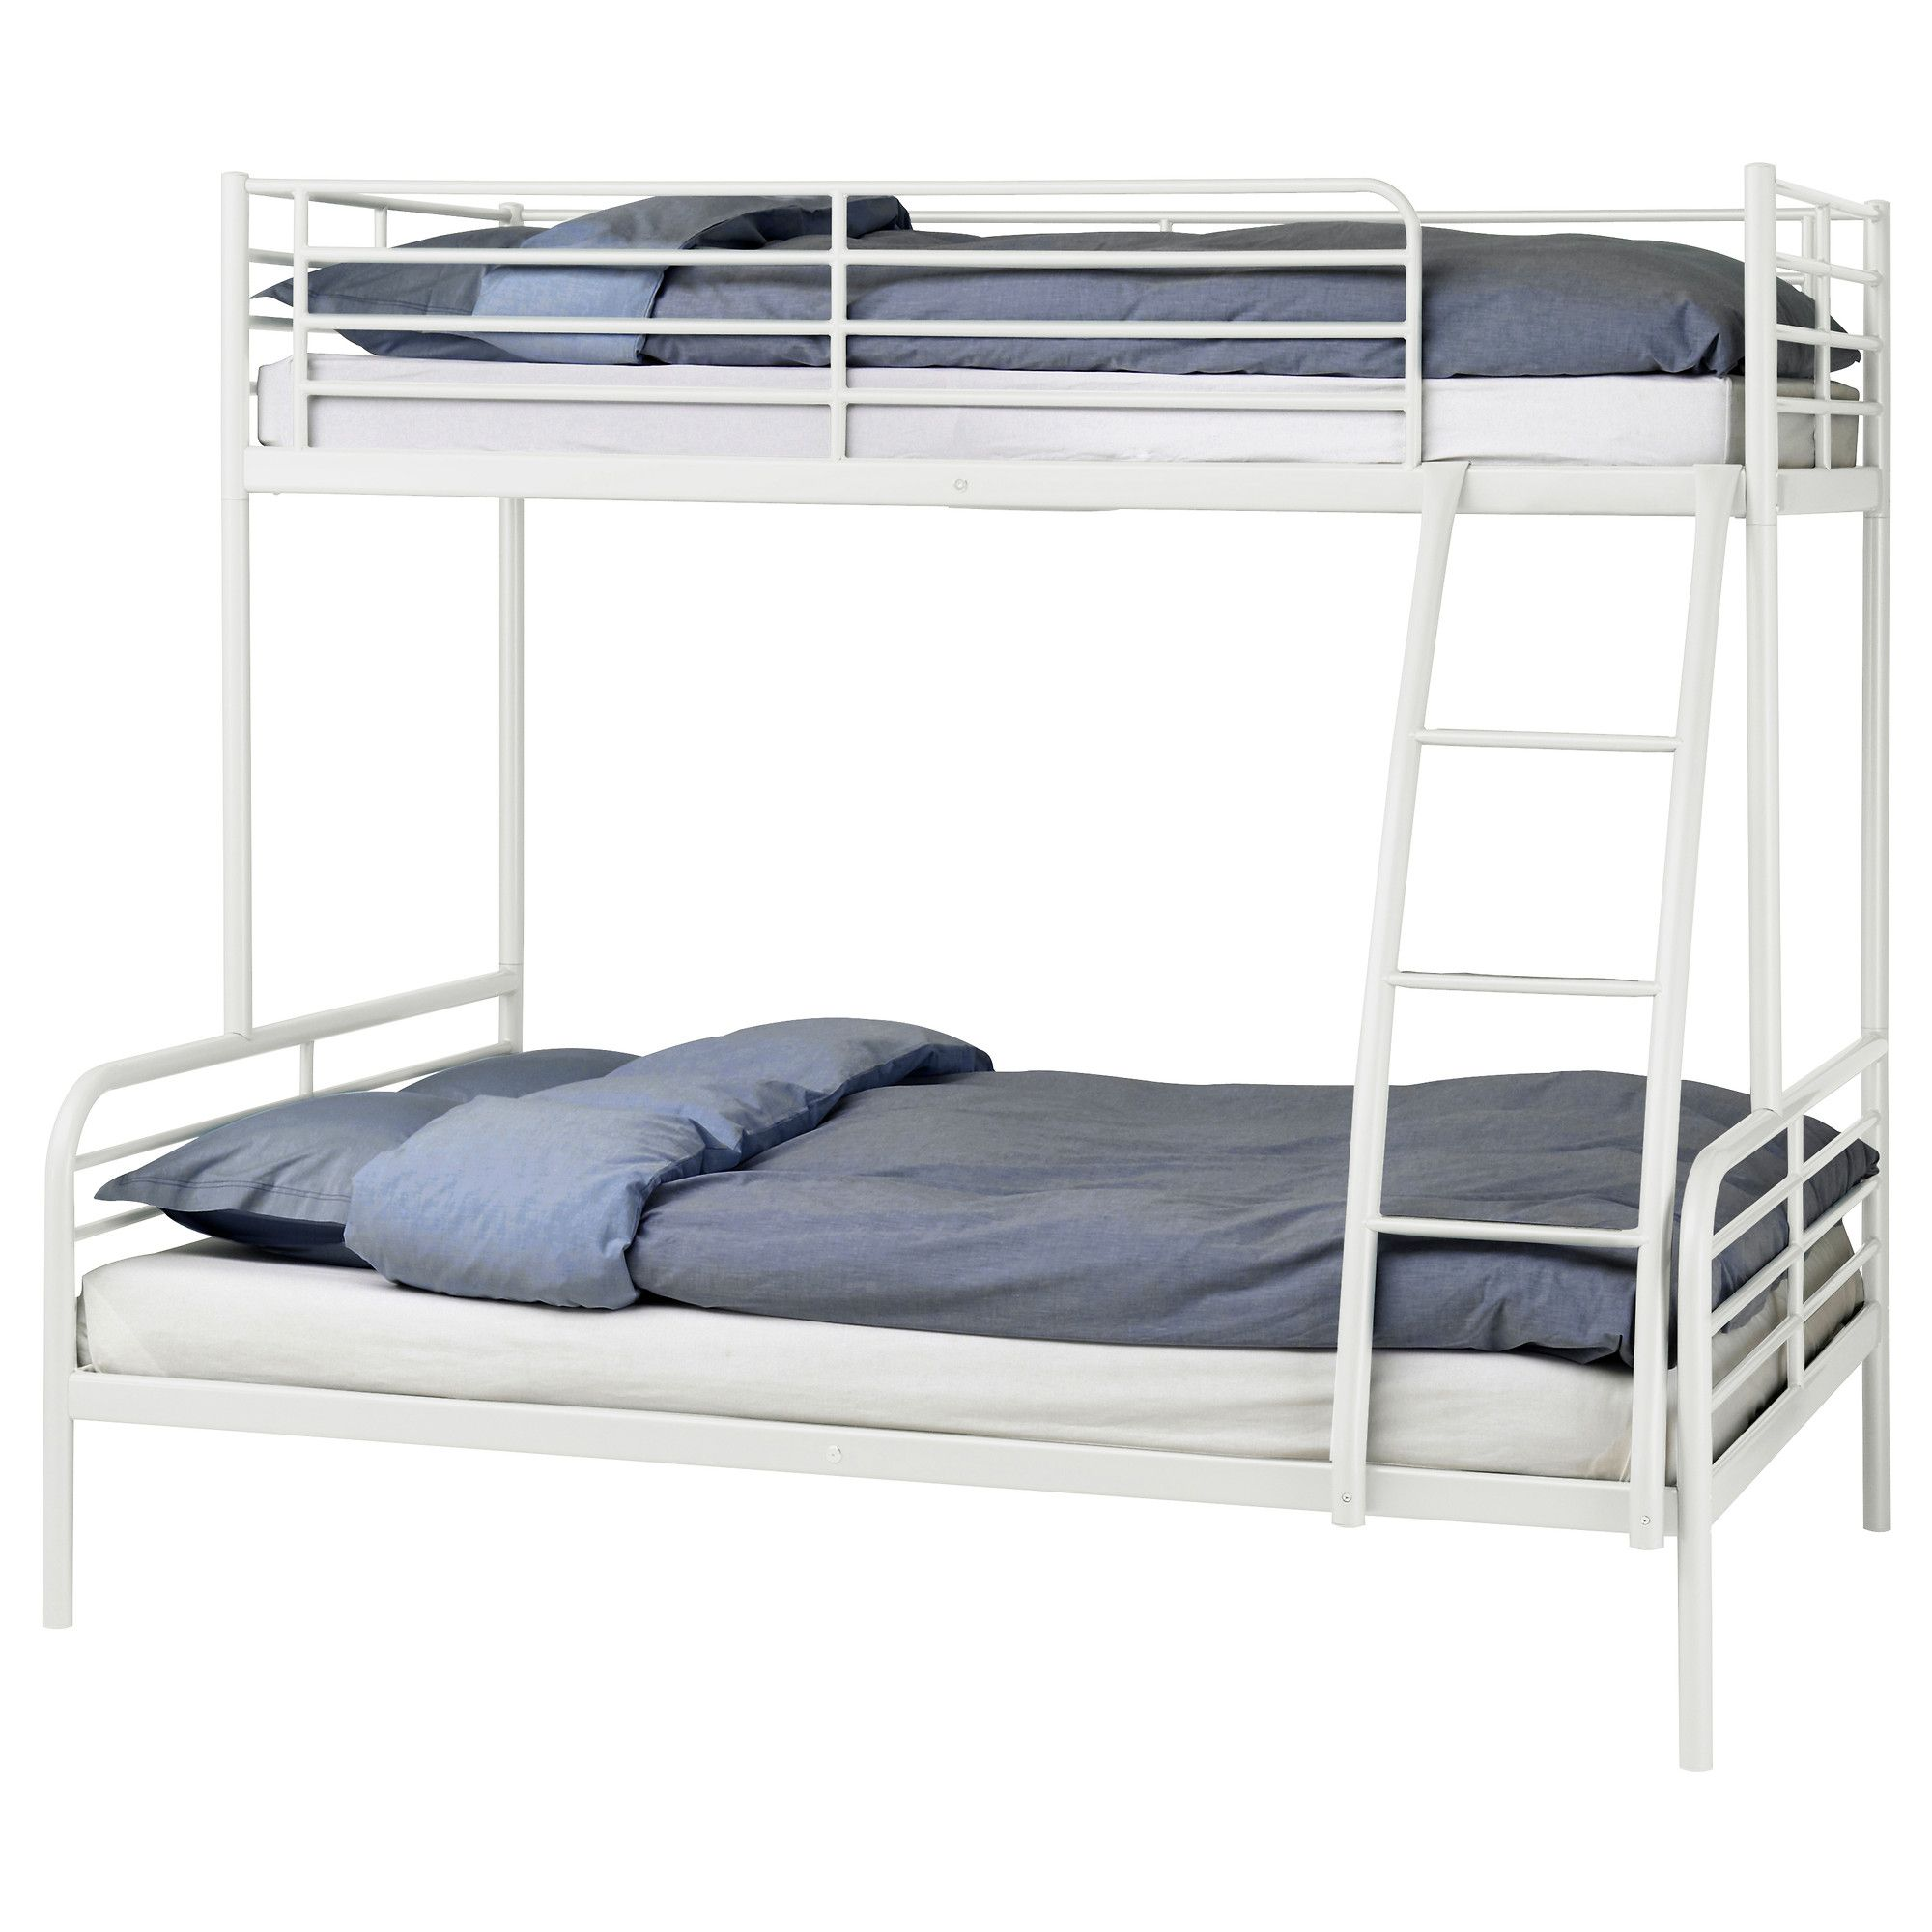 Tromso Bunk Bed Frame Ikea Little Boys Room Pinterest Bunk